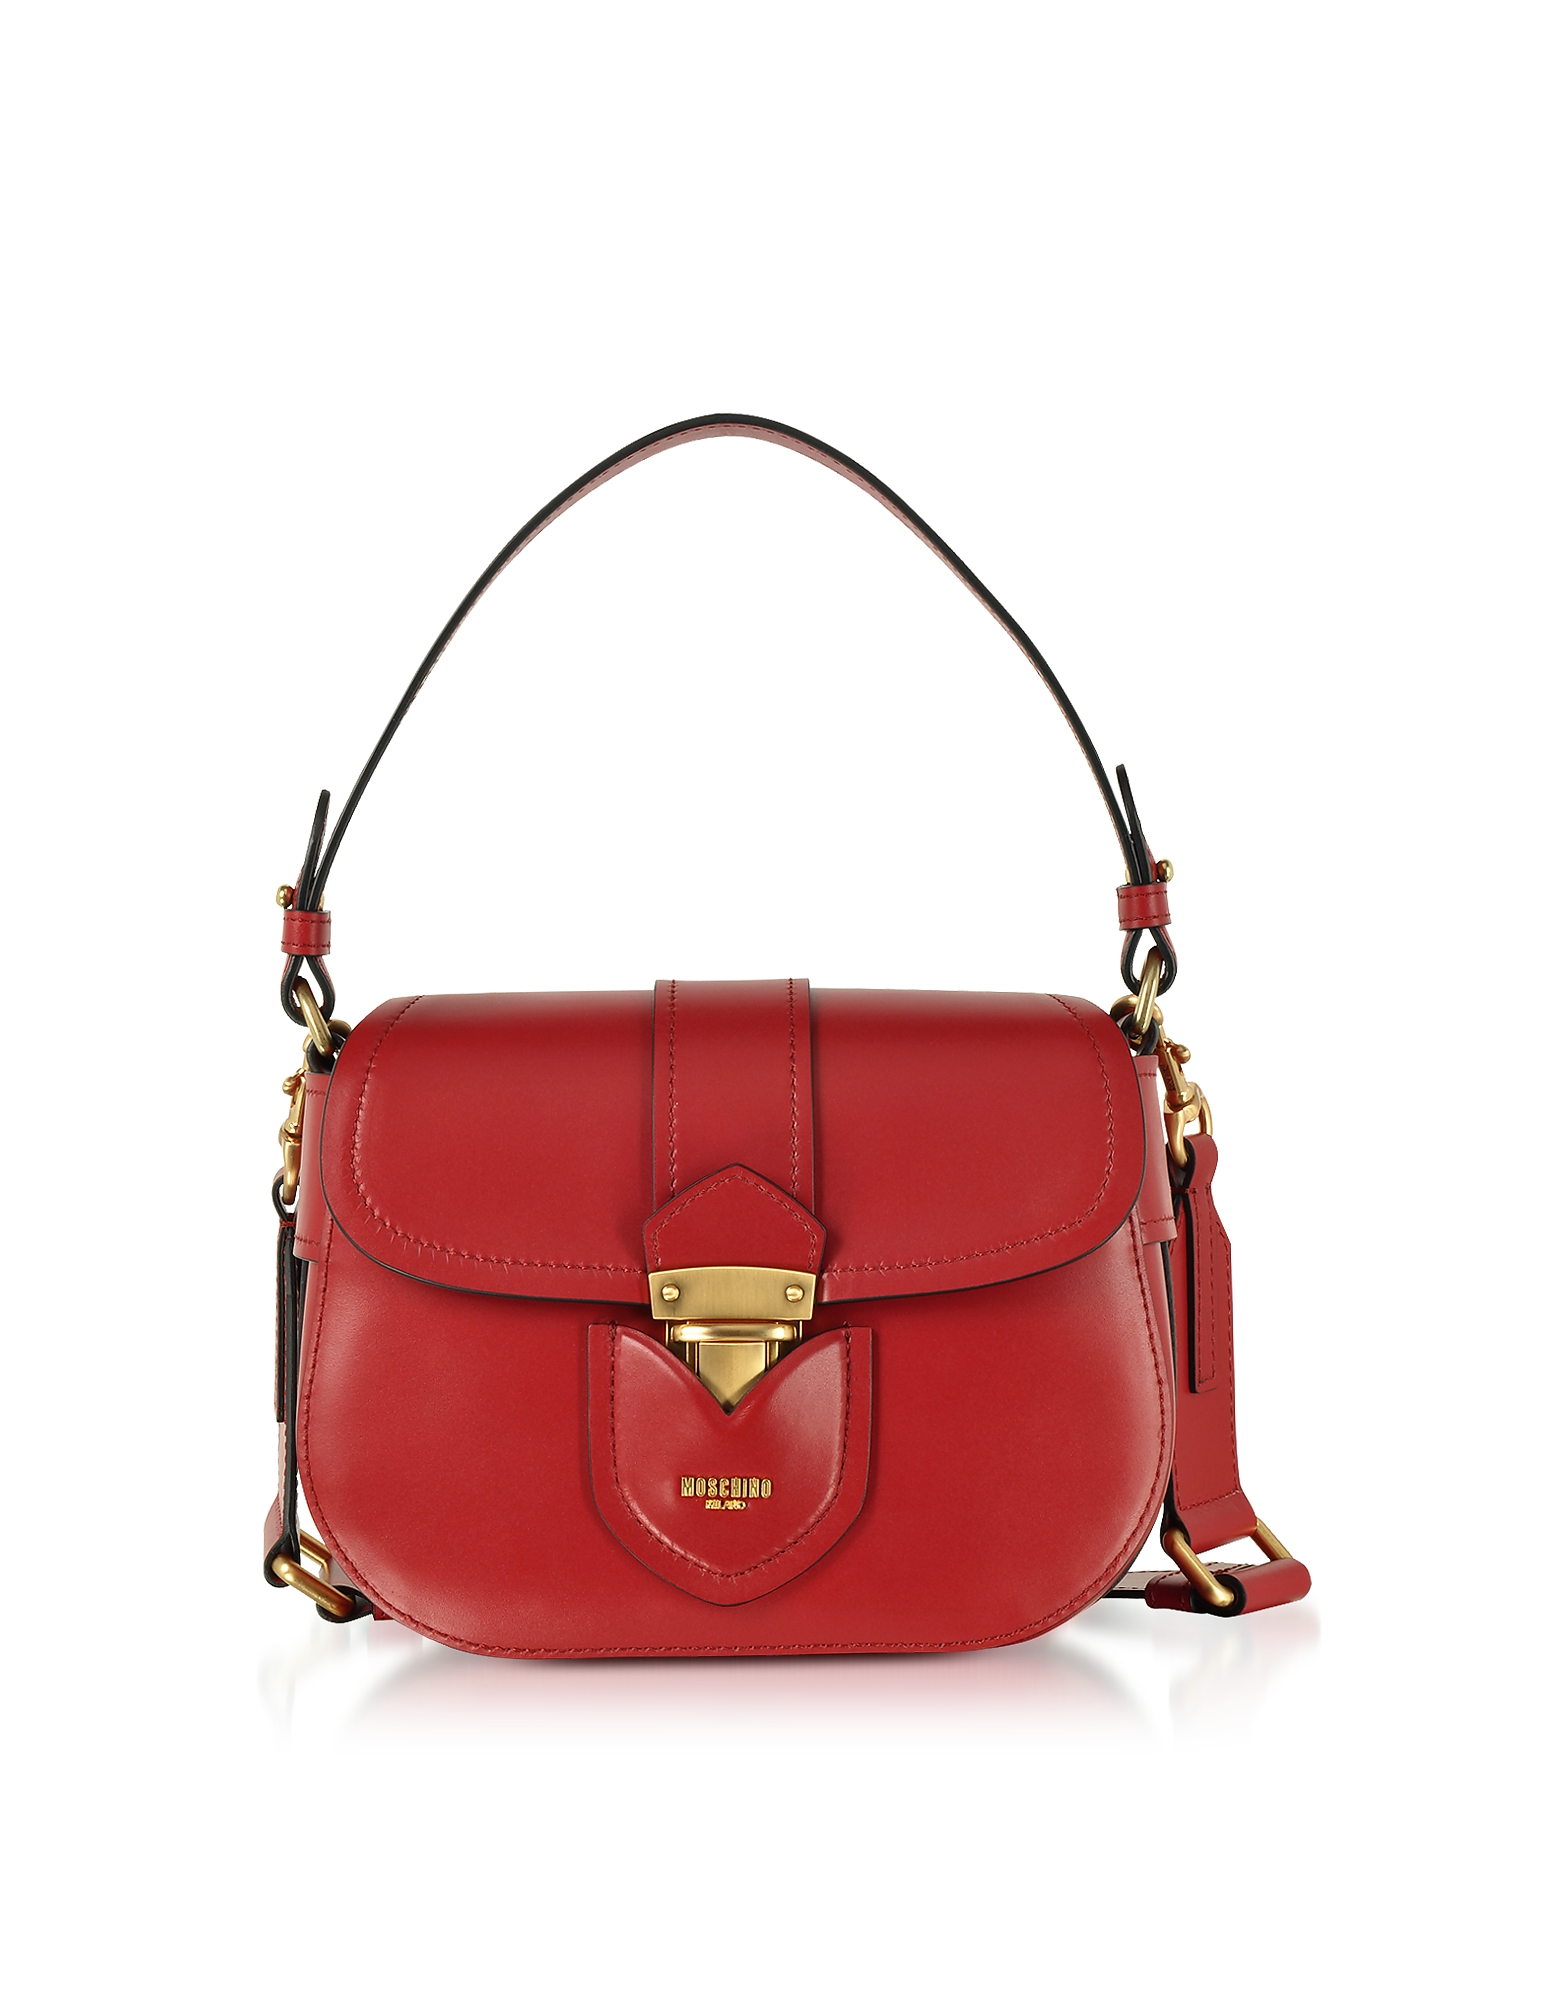 Moschino Handbags, Red Leather Crossbody Bag